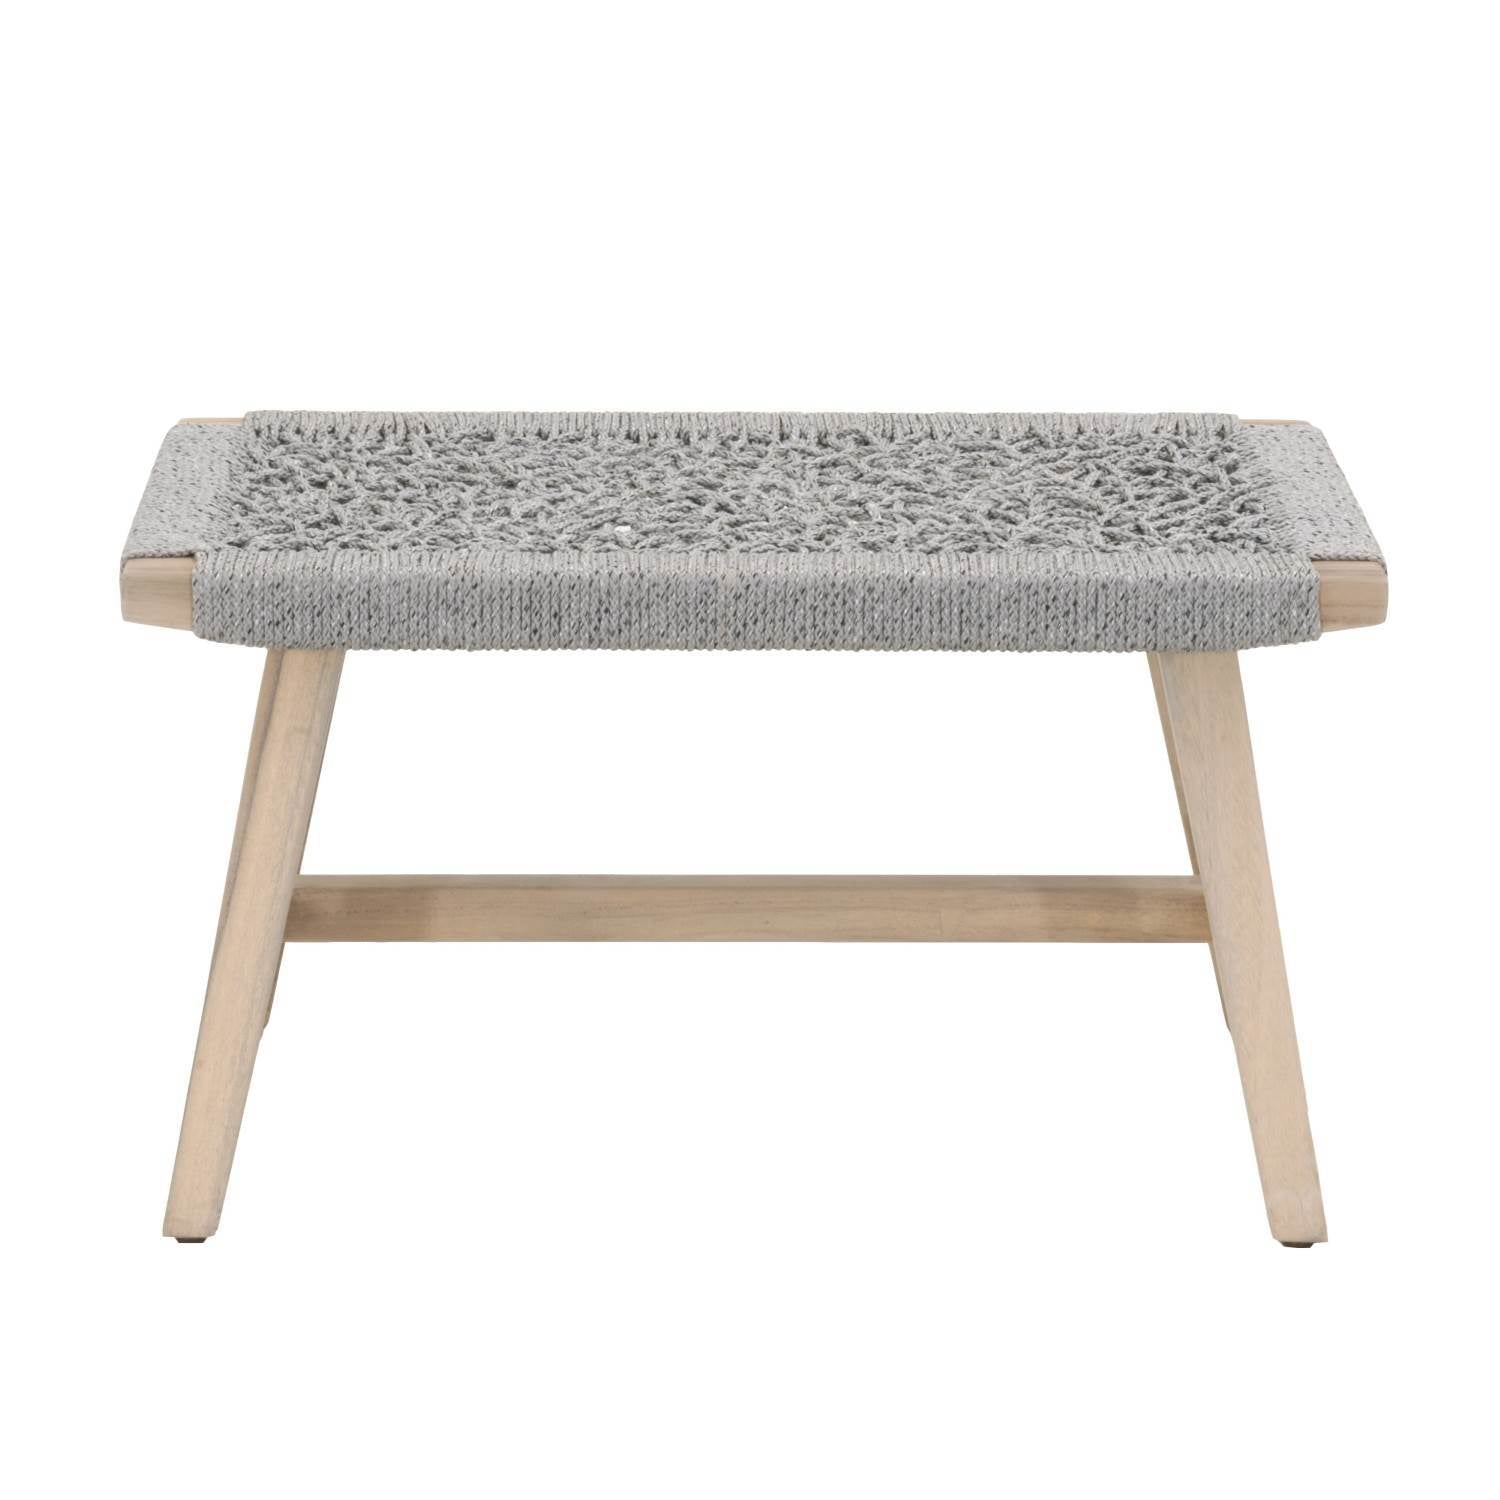 Weave Outdoor Accent Stool in Platinum Rope